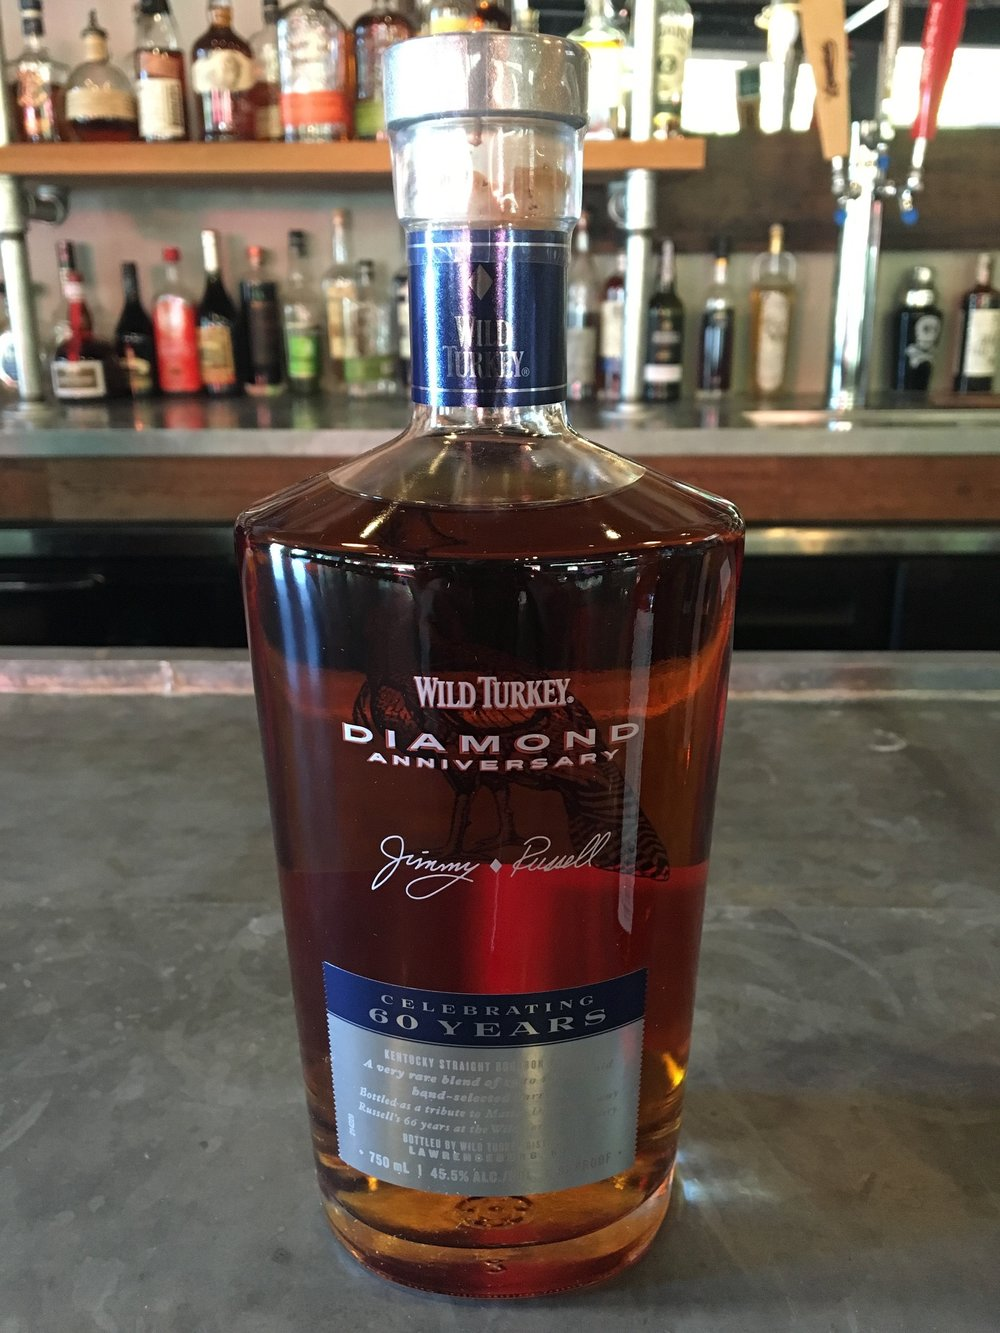 Wild Turkey Diamond Anniversary